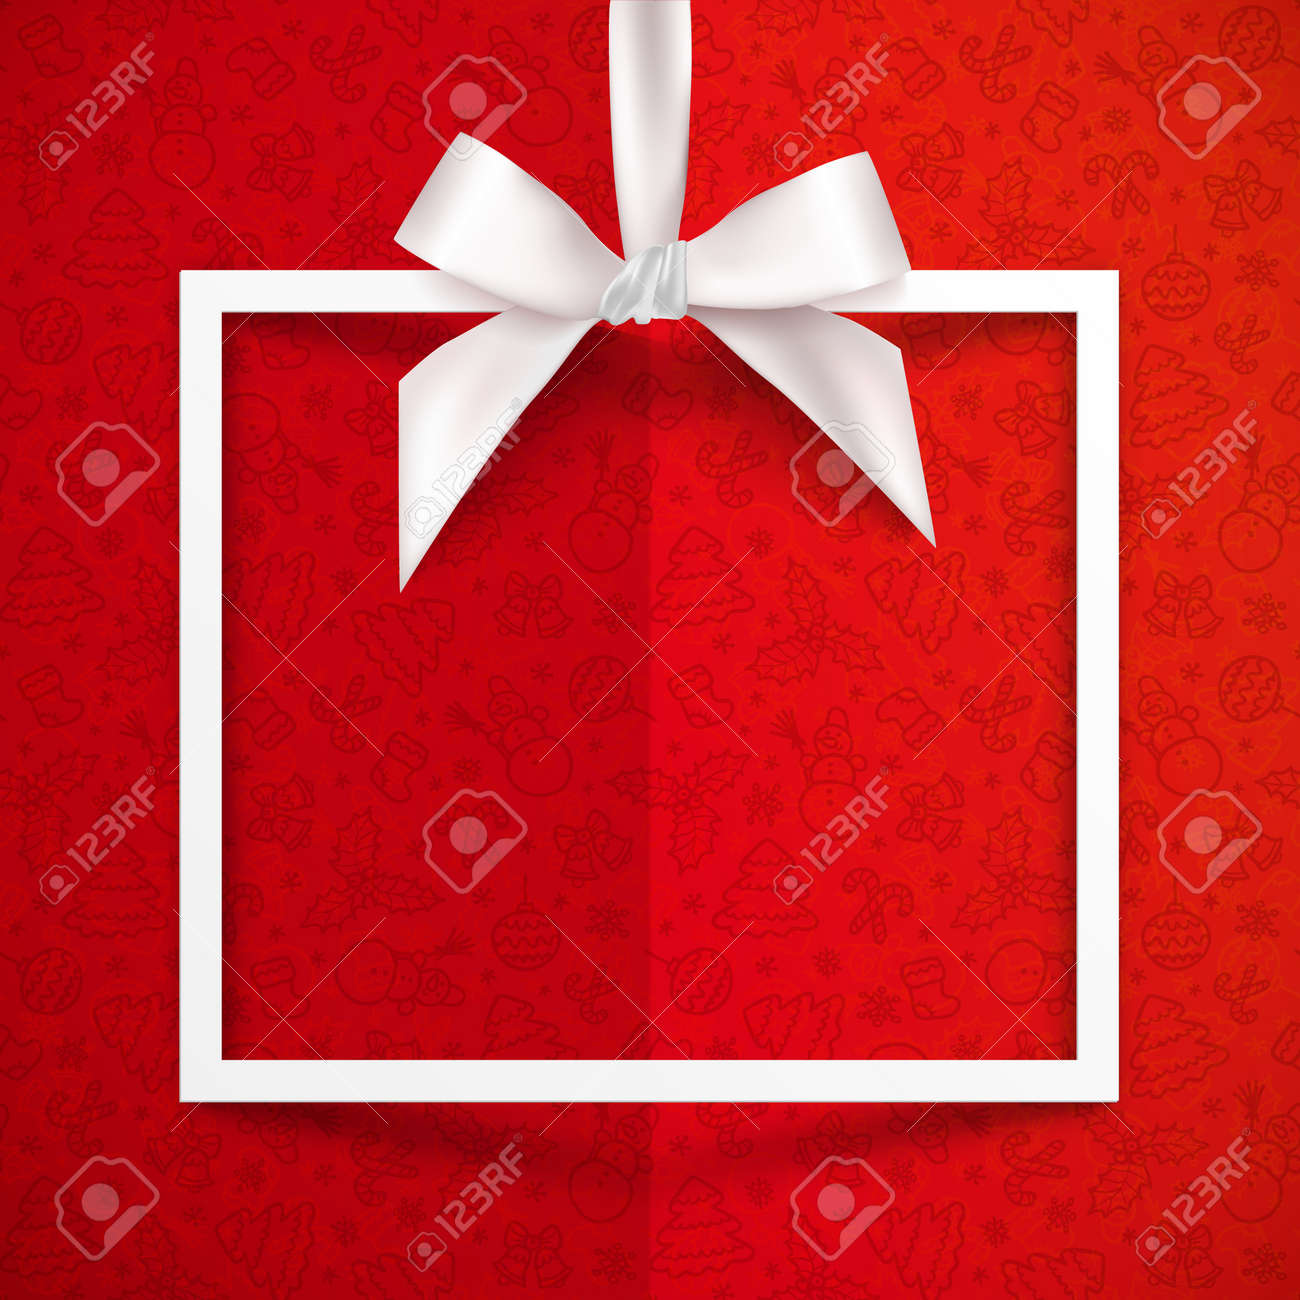 Gift box images stock pictures royalty free gift box photos and white paper gift box vector frame with silky bow and ribbon on red christmas pattern background negle Gallery